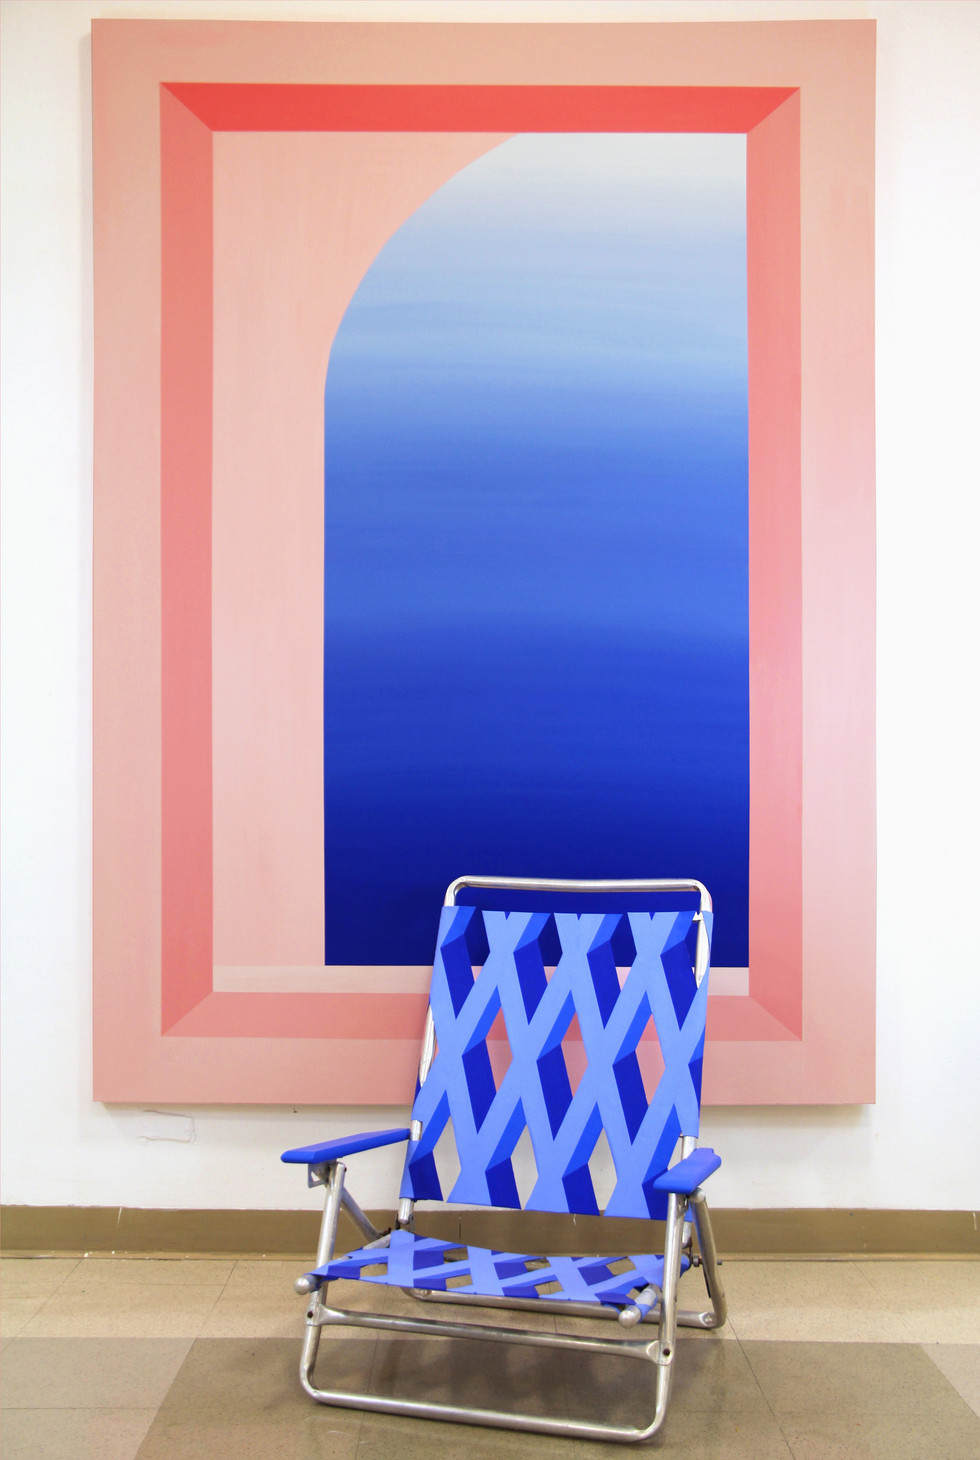 """Mack Sikora, I Told My Grandma About You; [Self Portrait in Blue (chair)], 2019, Acrylic and Flashe on canvas; [acrylic and flashe on canvas, metal and wood chair frame, adhesive and chip board], 5'x7' [22""""x35""""x25""""]"""